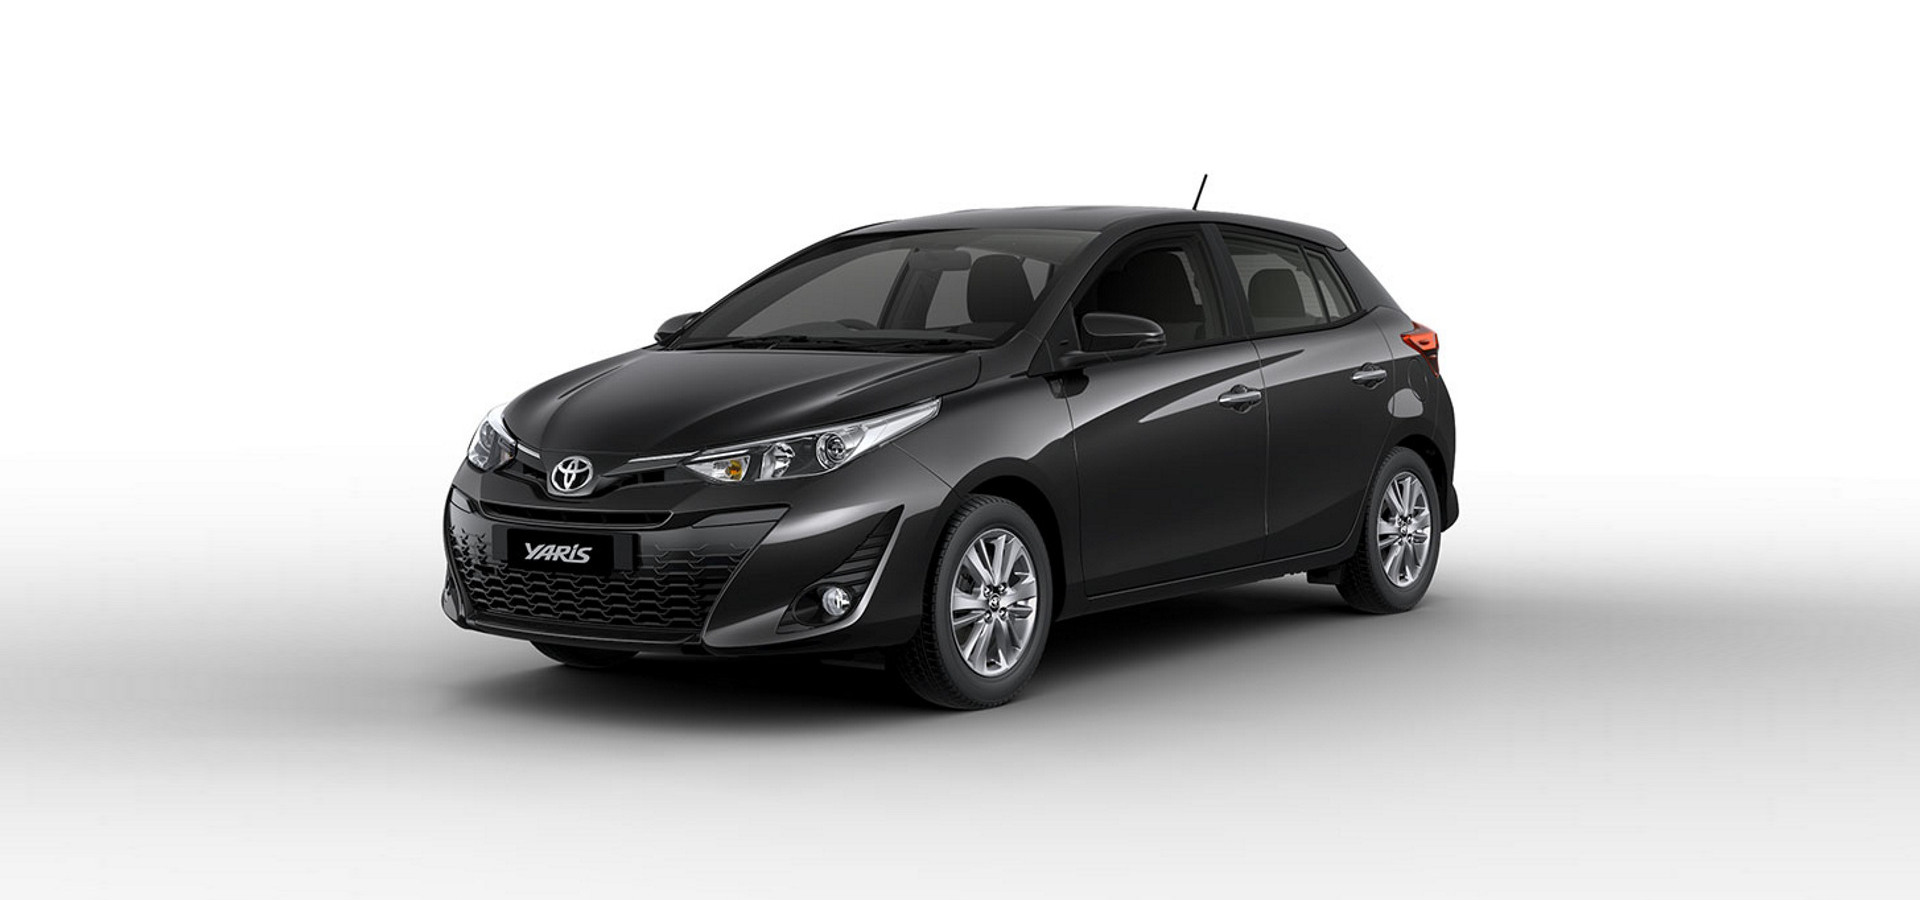 Toyota Yaris Hatchback Colores